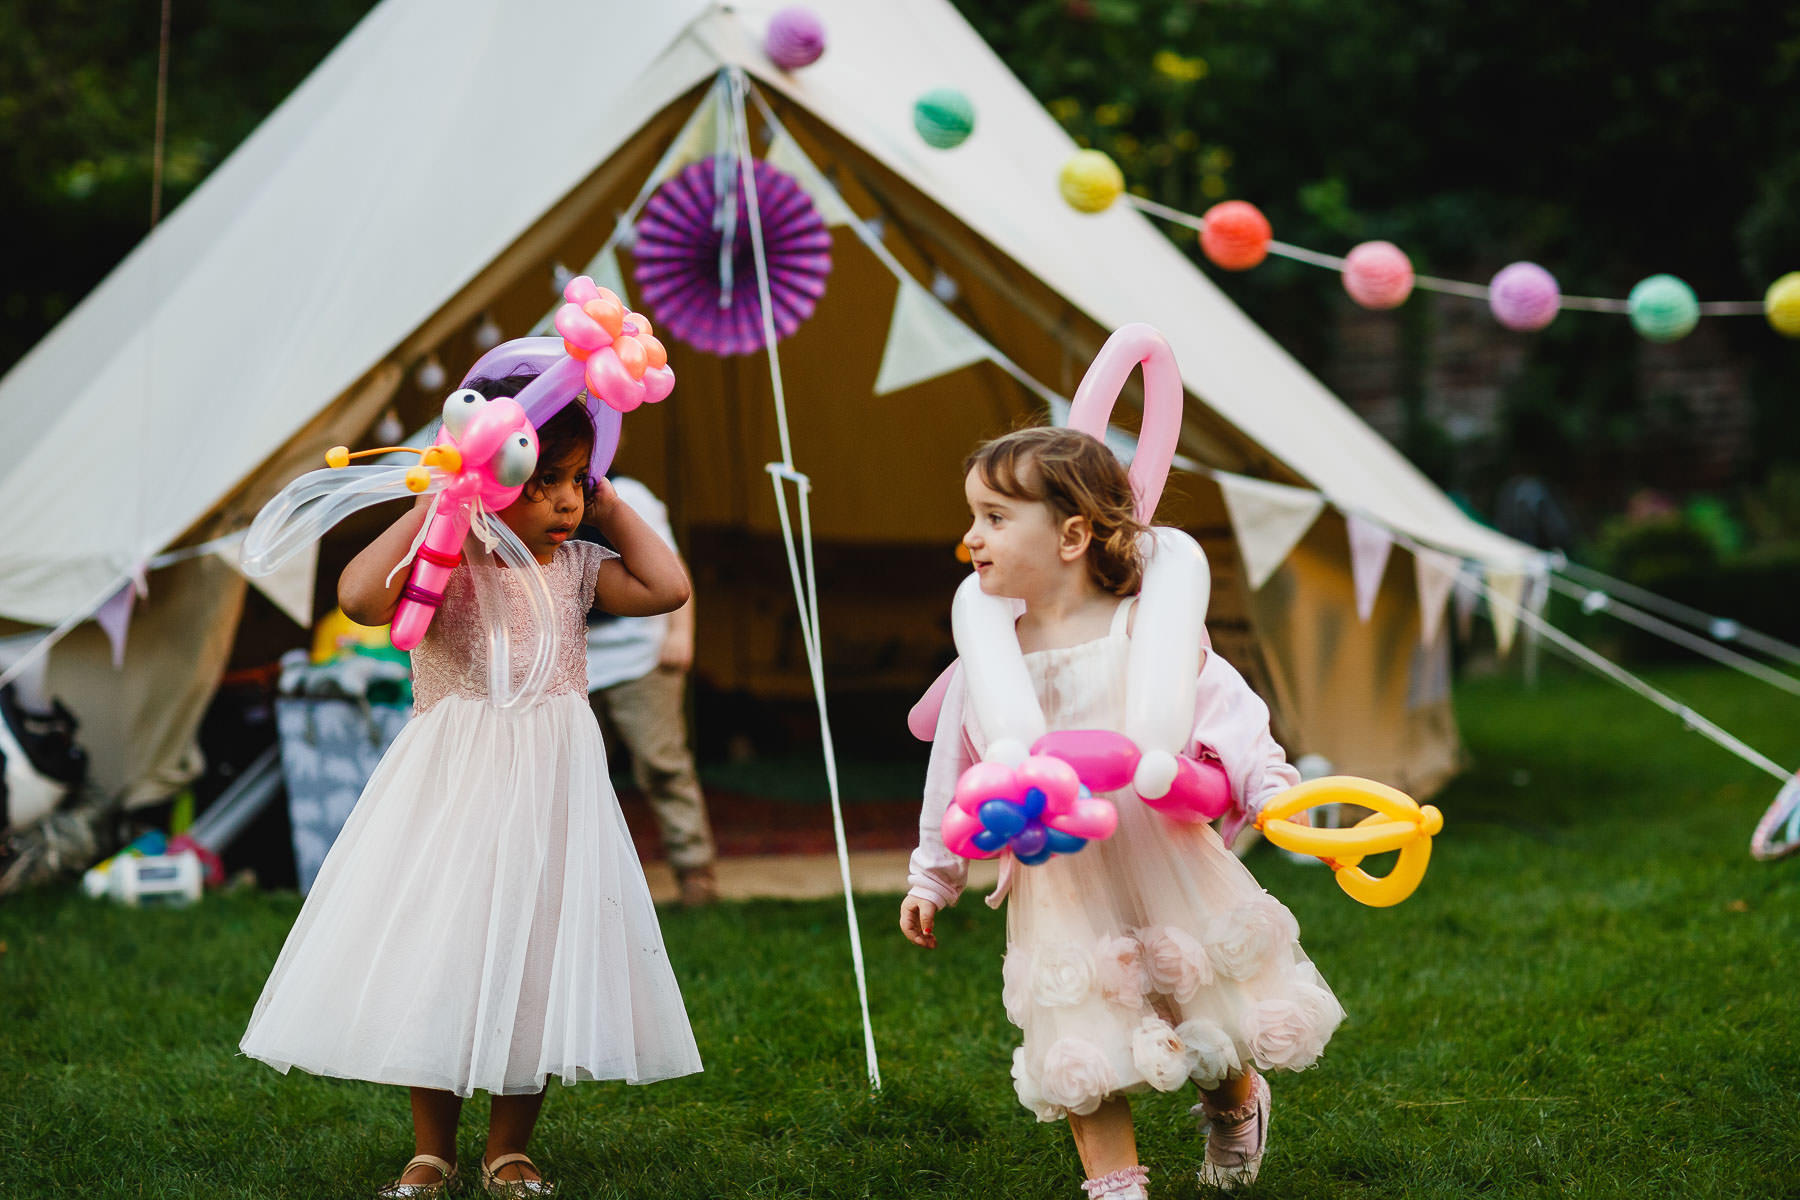 The Little Top Childrens Wedding Creche